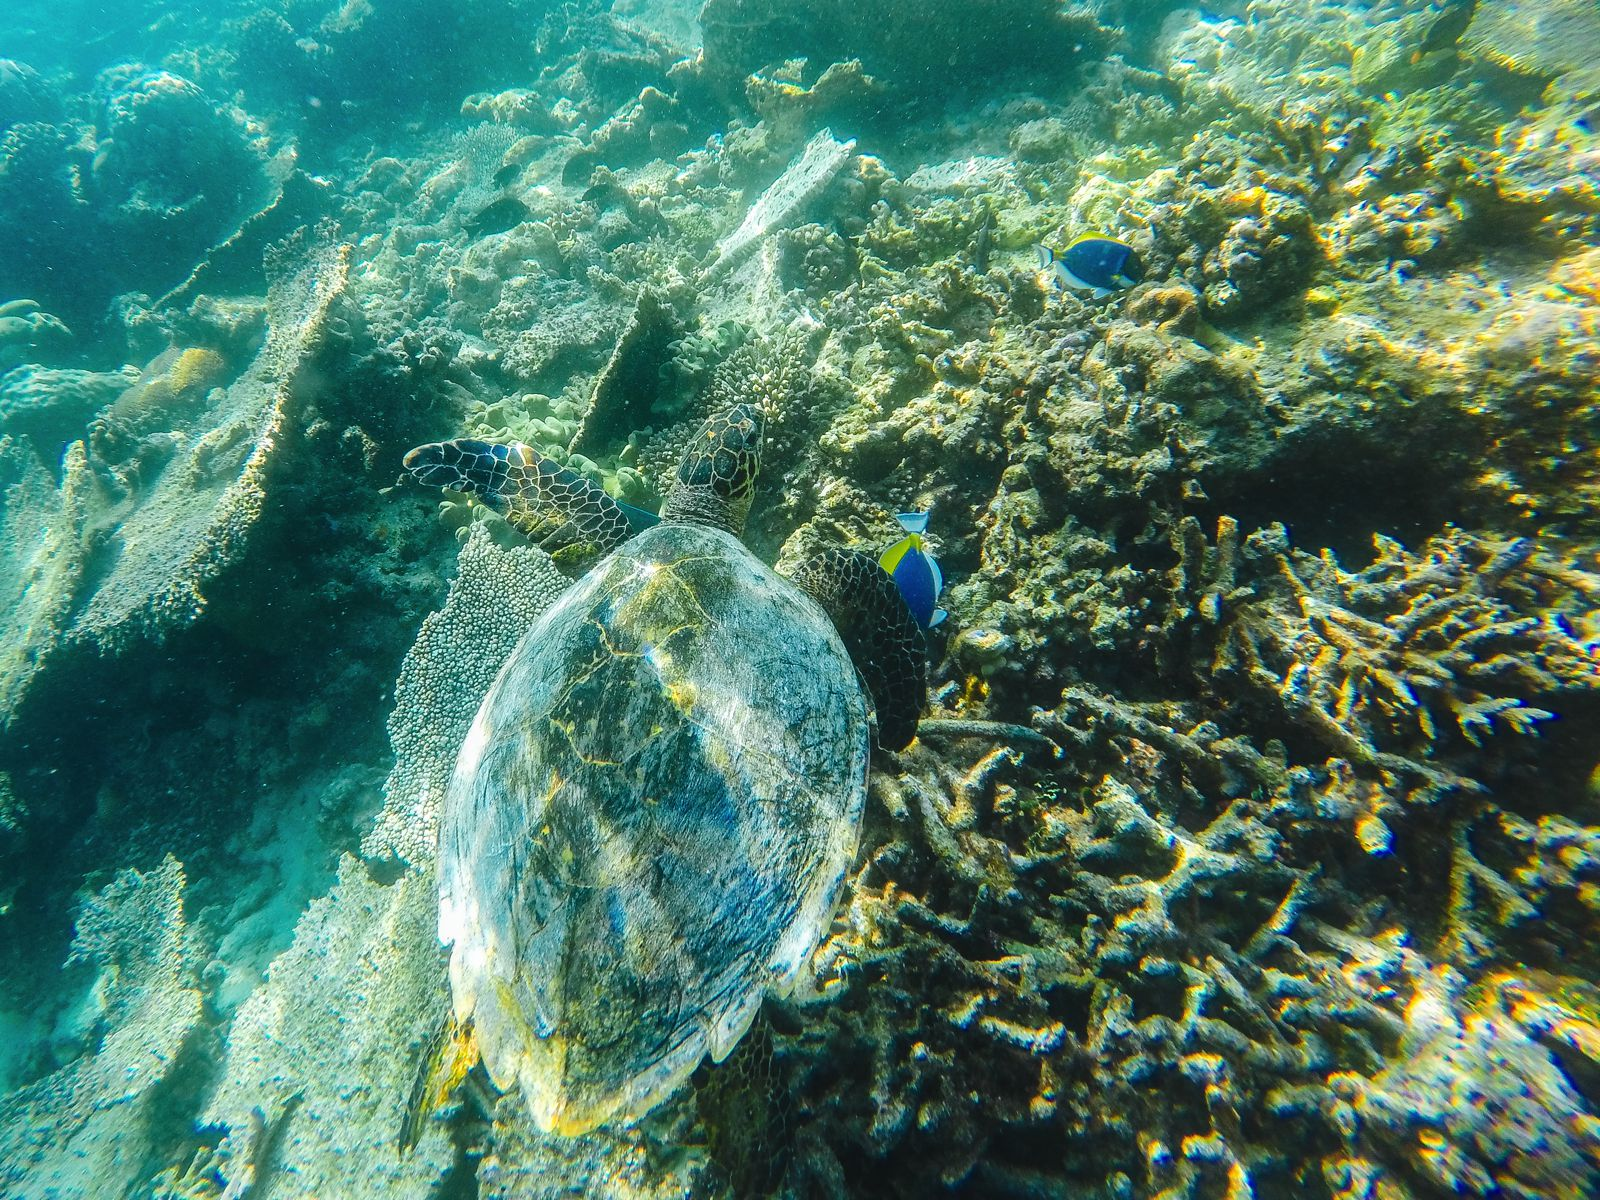 Swimming With Sharks, Turtles, Clownfish And Stingrays In The Maldives (11)